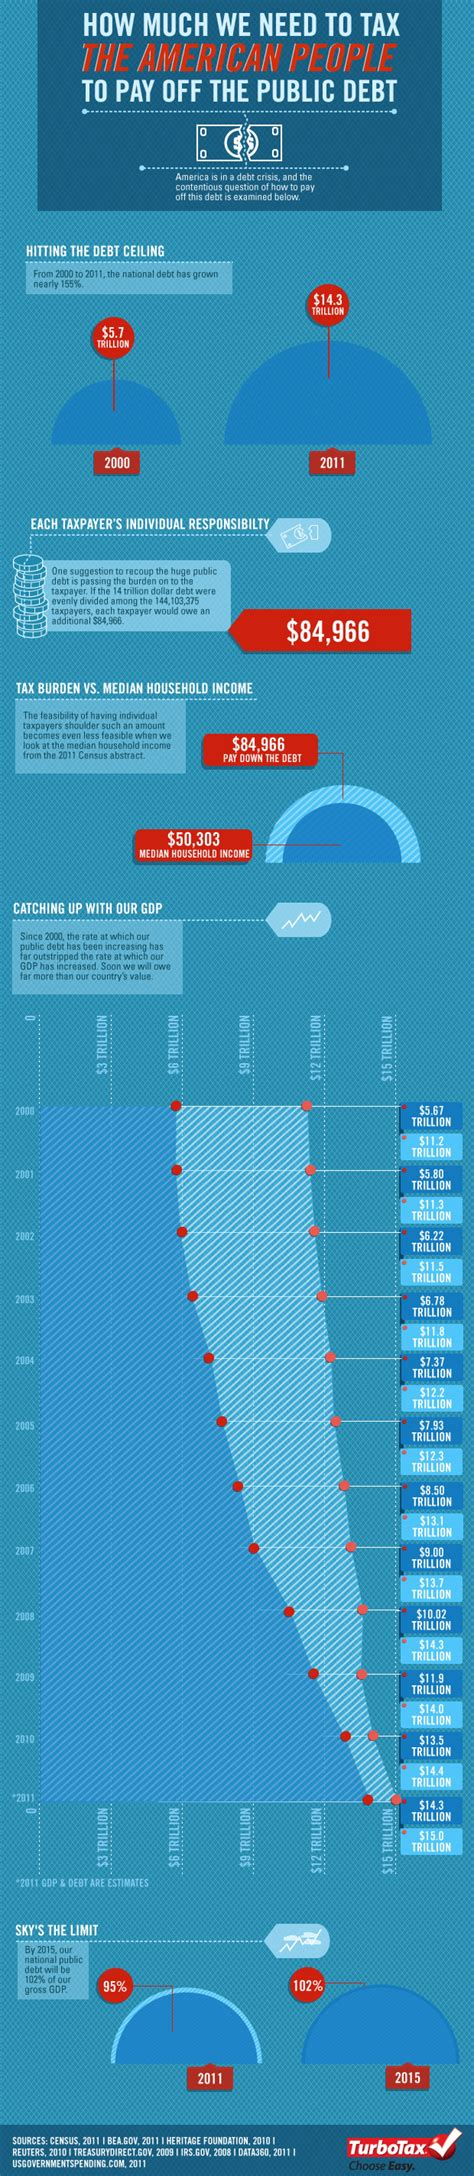 This Infographic Examines How Much Theu S Debt How Much To Tax The To Pay The